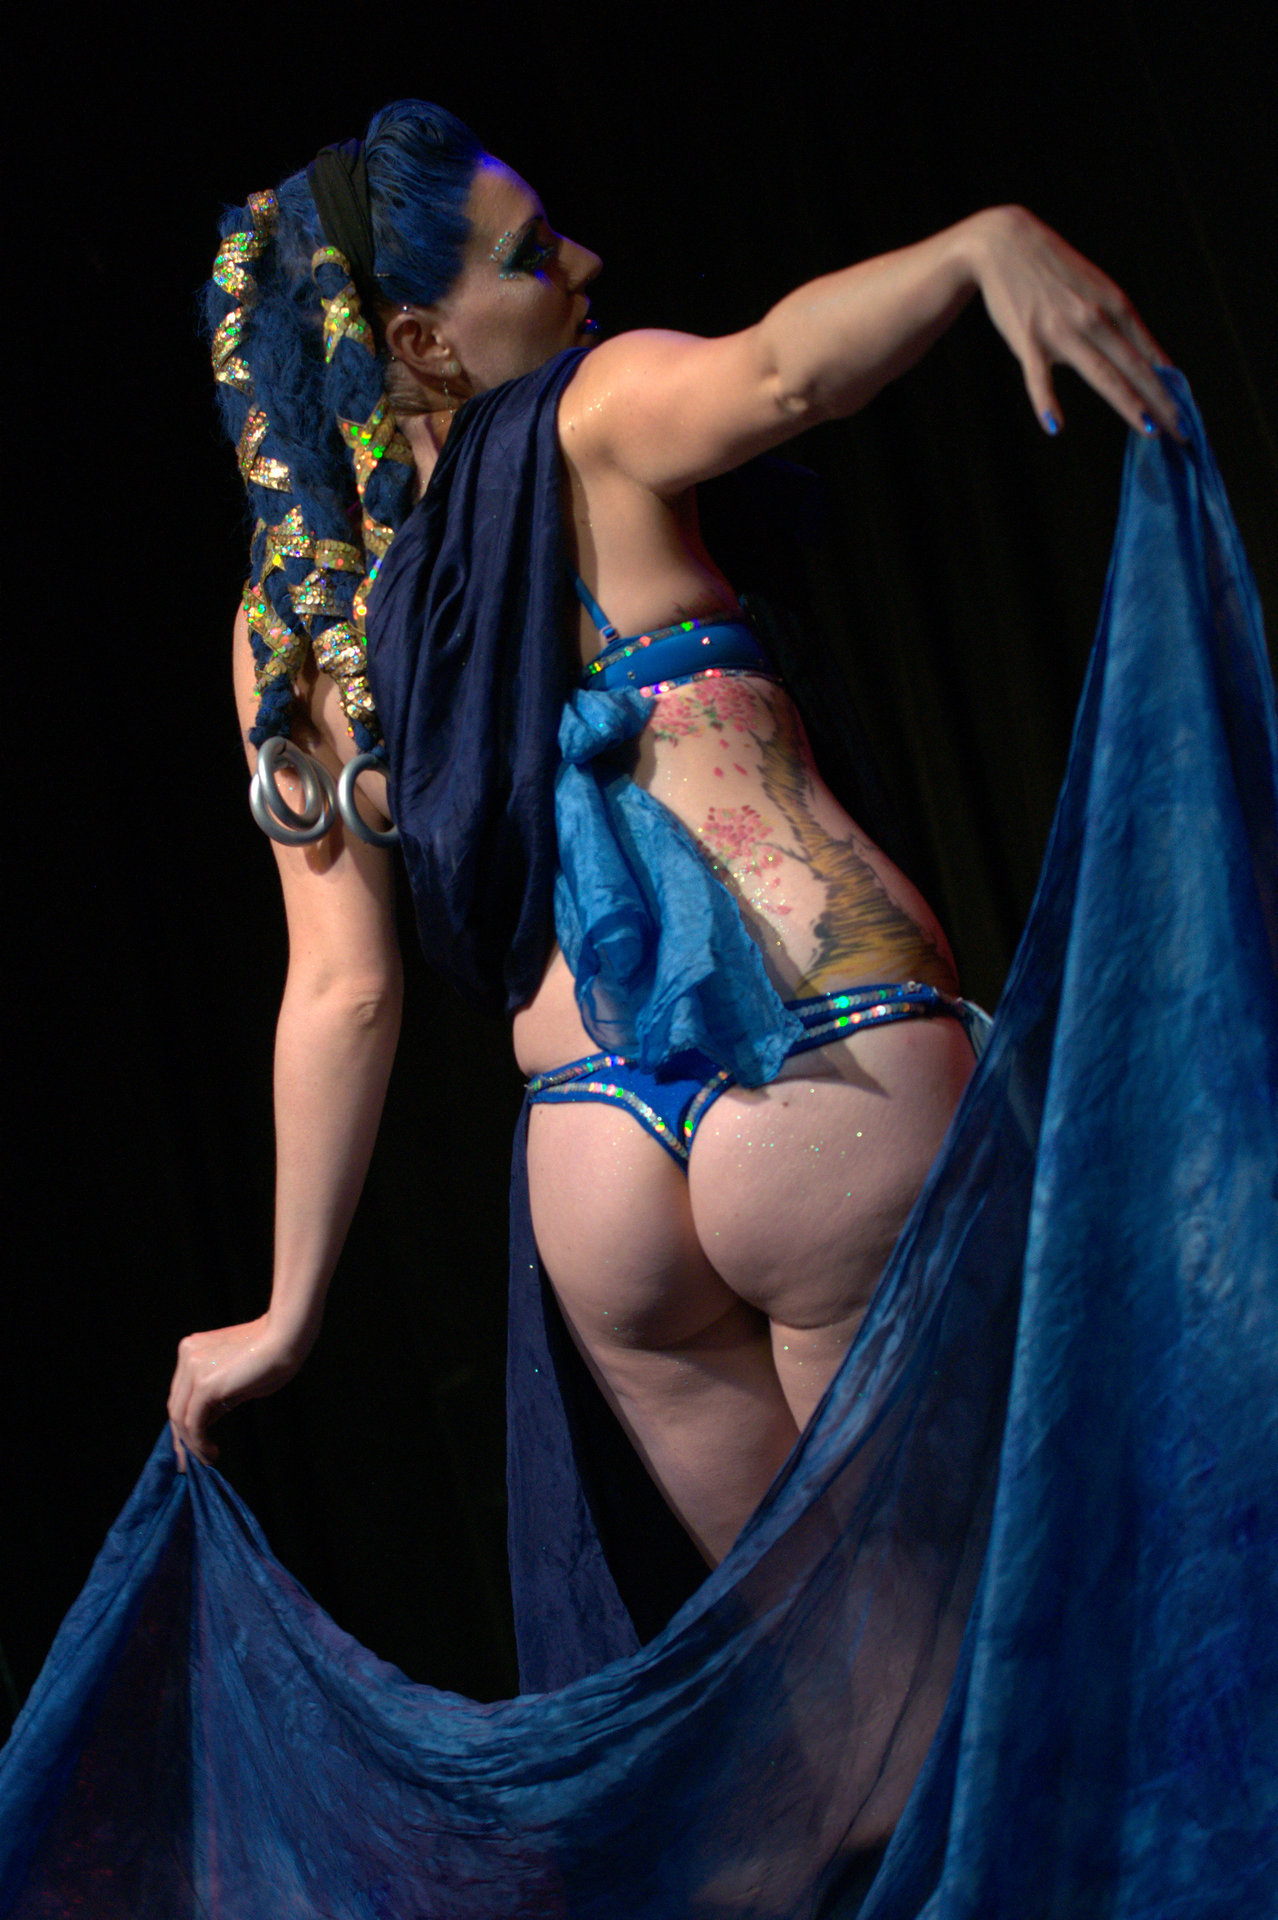 August 1, 2012 Final Fantasy Burlesque.  Apparently, her favorite Summon is Shiva. I was kinda hoping for Fat Chocobo, but oh well.